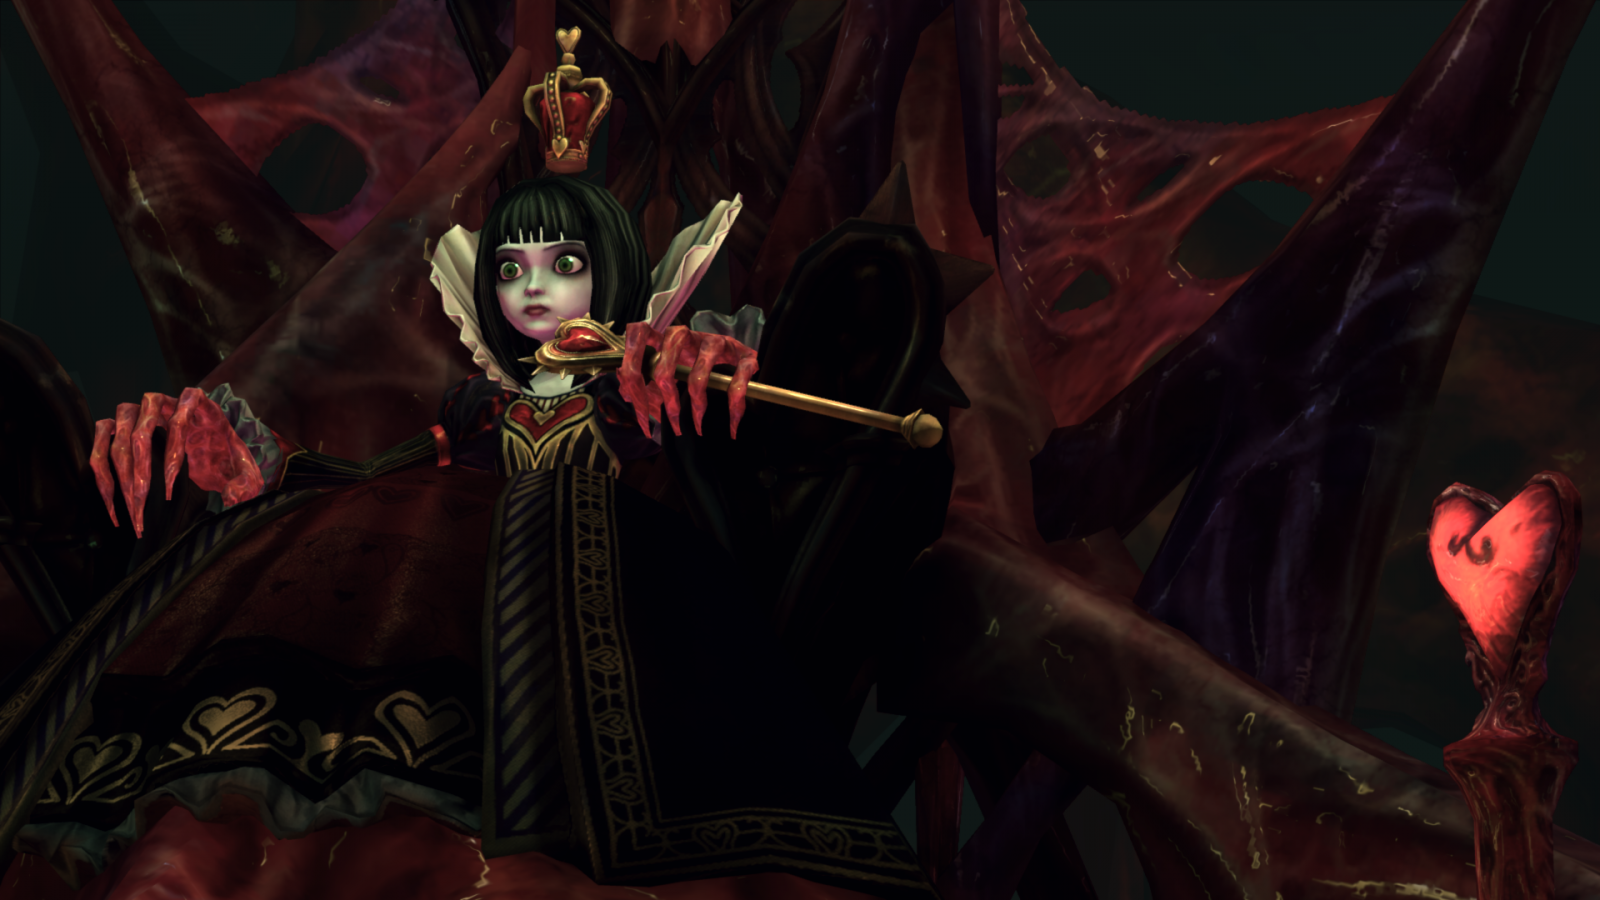 Free Download Alice Madness Returns 1080p Wallpaper 34 Red Queen